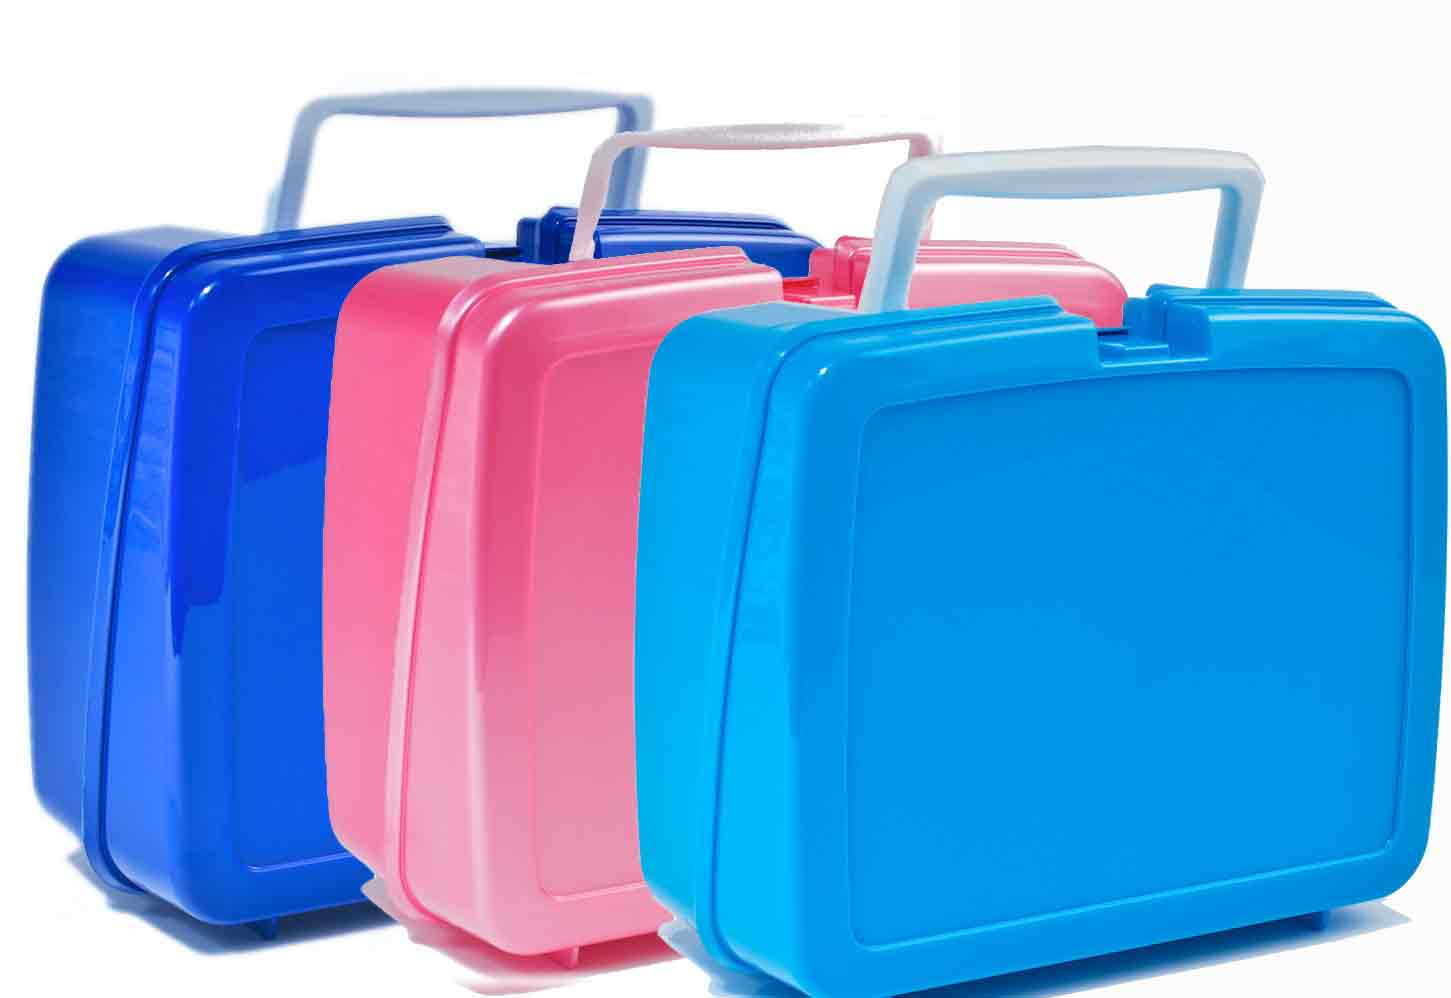 Kids Lunch cases / boxes